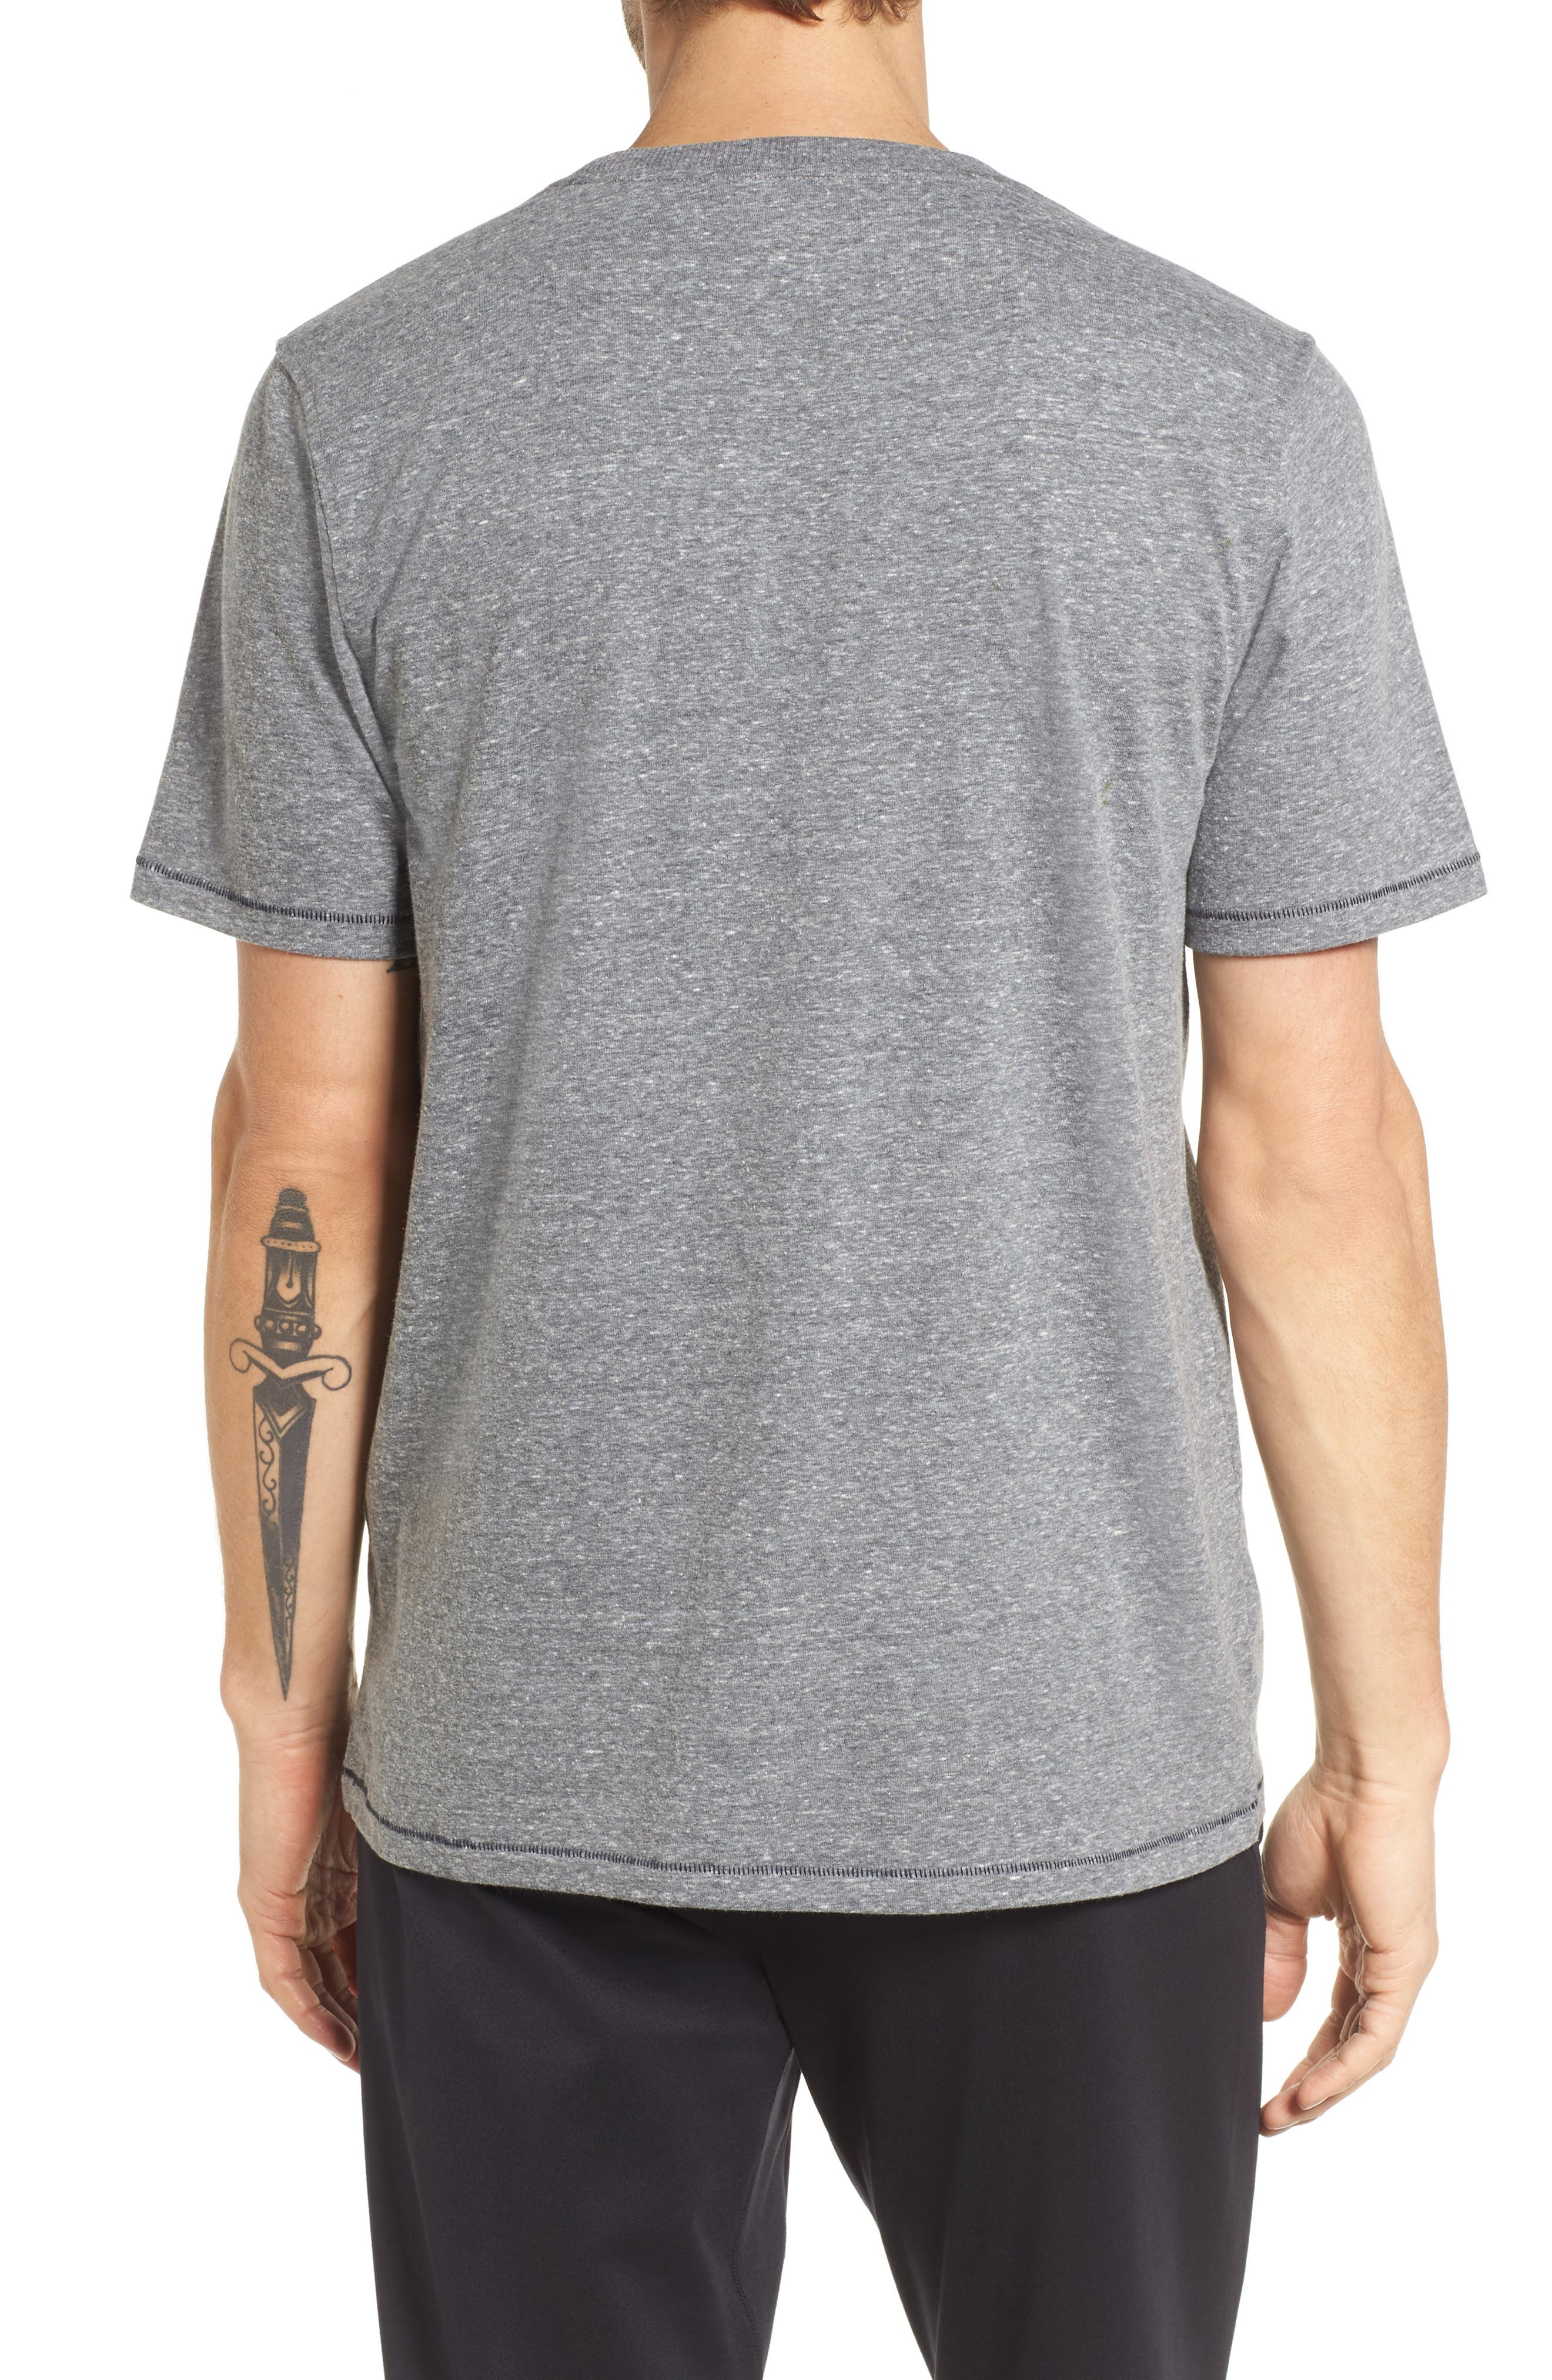 Benjamin Crewneck T-Shirt,                             Alternate thumbnail 2, color,                             Grey Heather